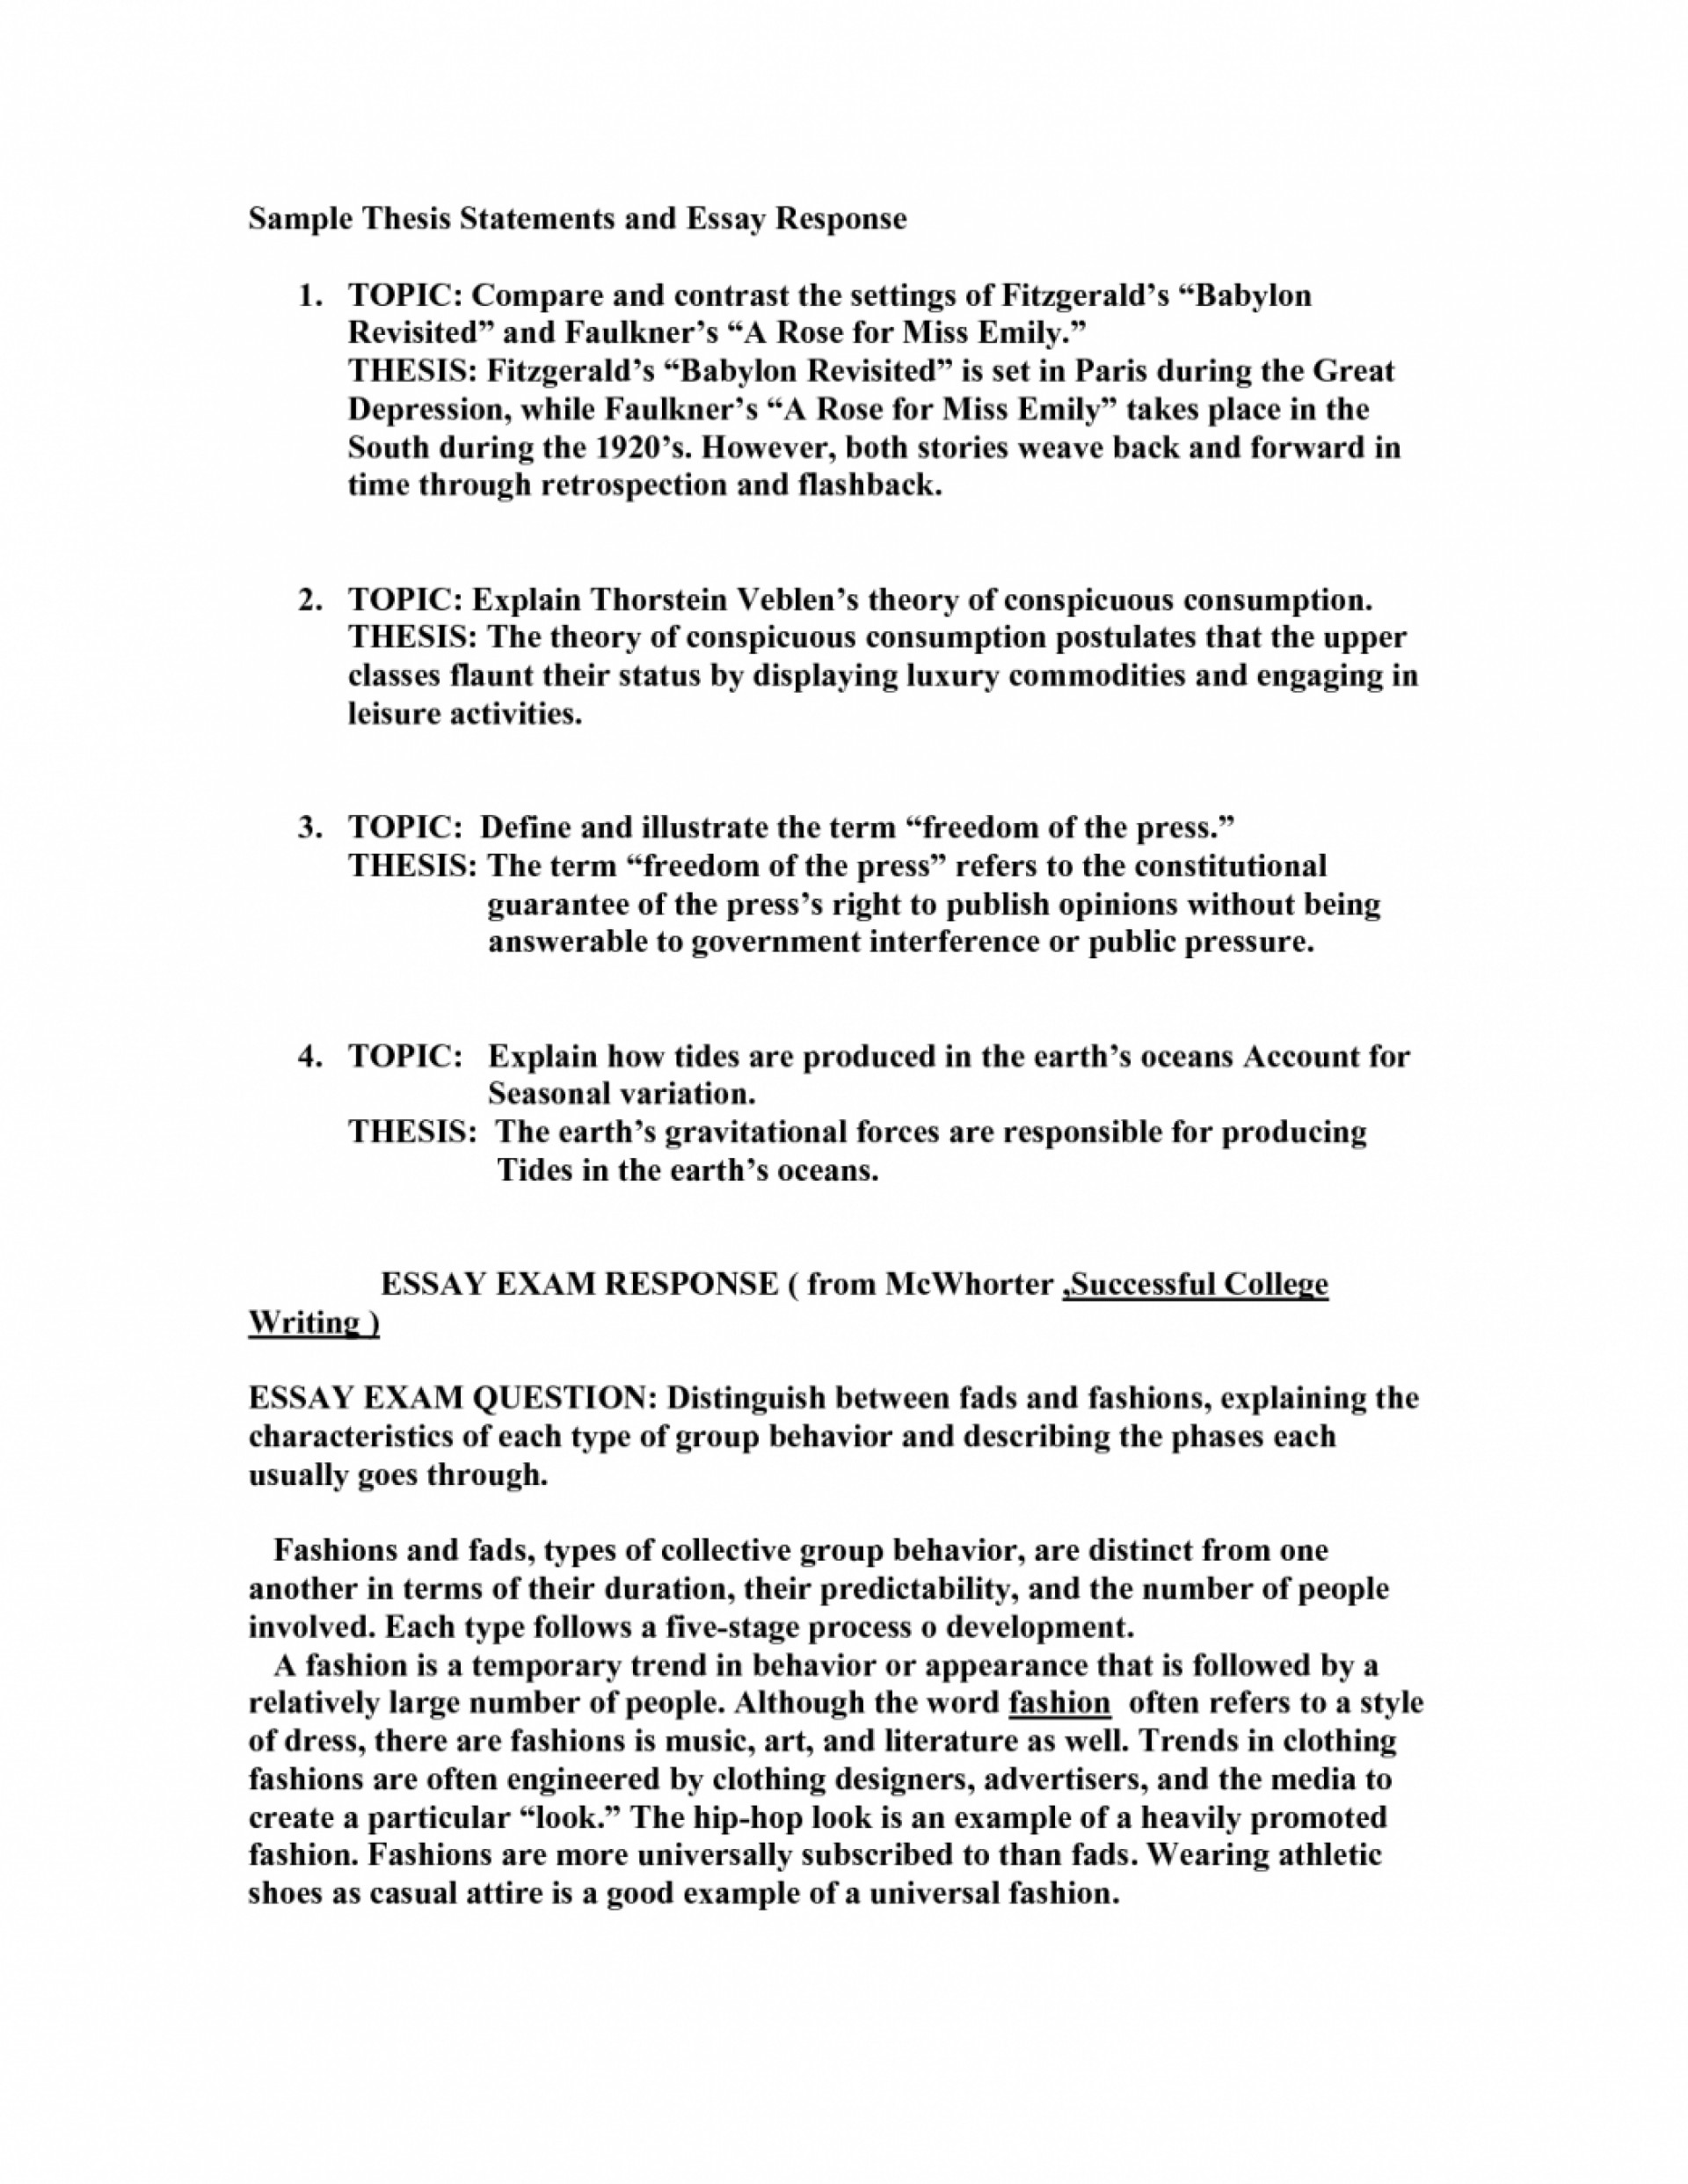 011 How To Write Thesis For An Essay Example Statement Of In About Yourself 6na1p Argumentative Step By Expository High Schoolpt Informative Analysis Unique A Exploratory Evaluation Good Analytical 1920